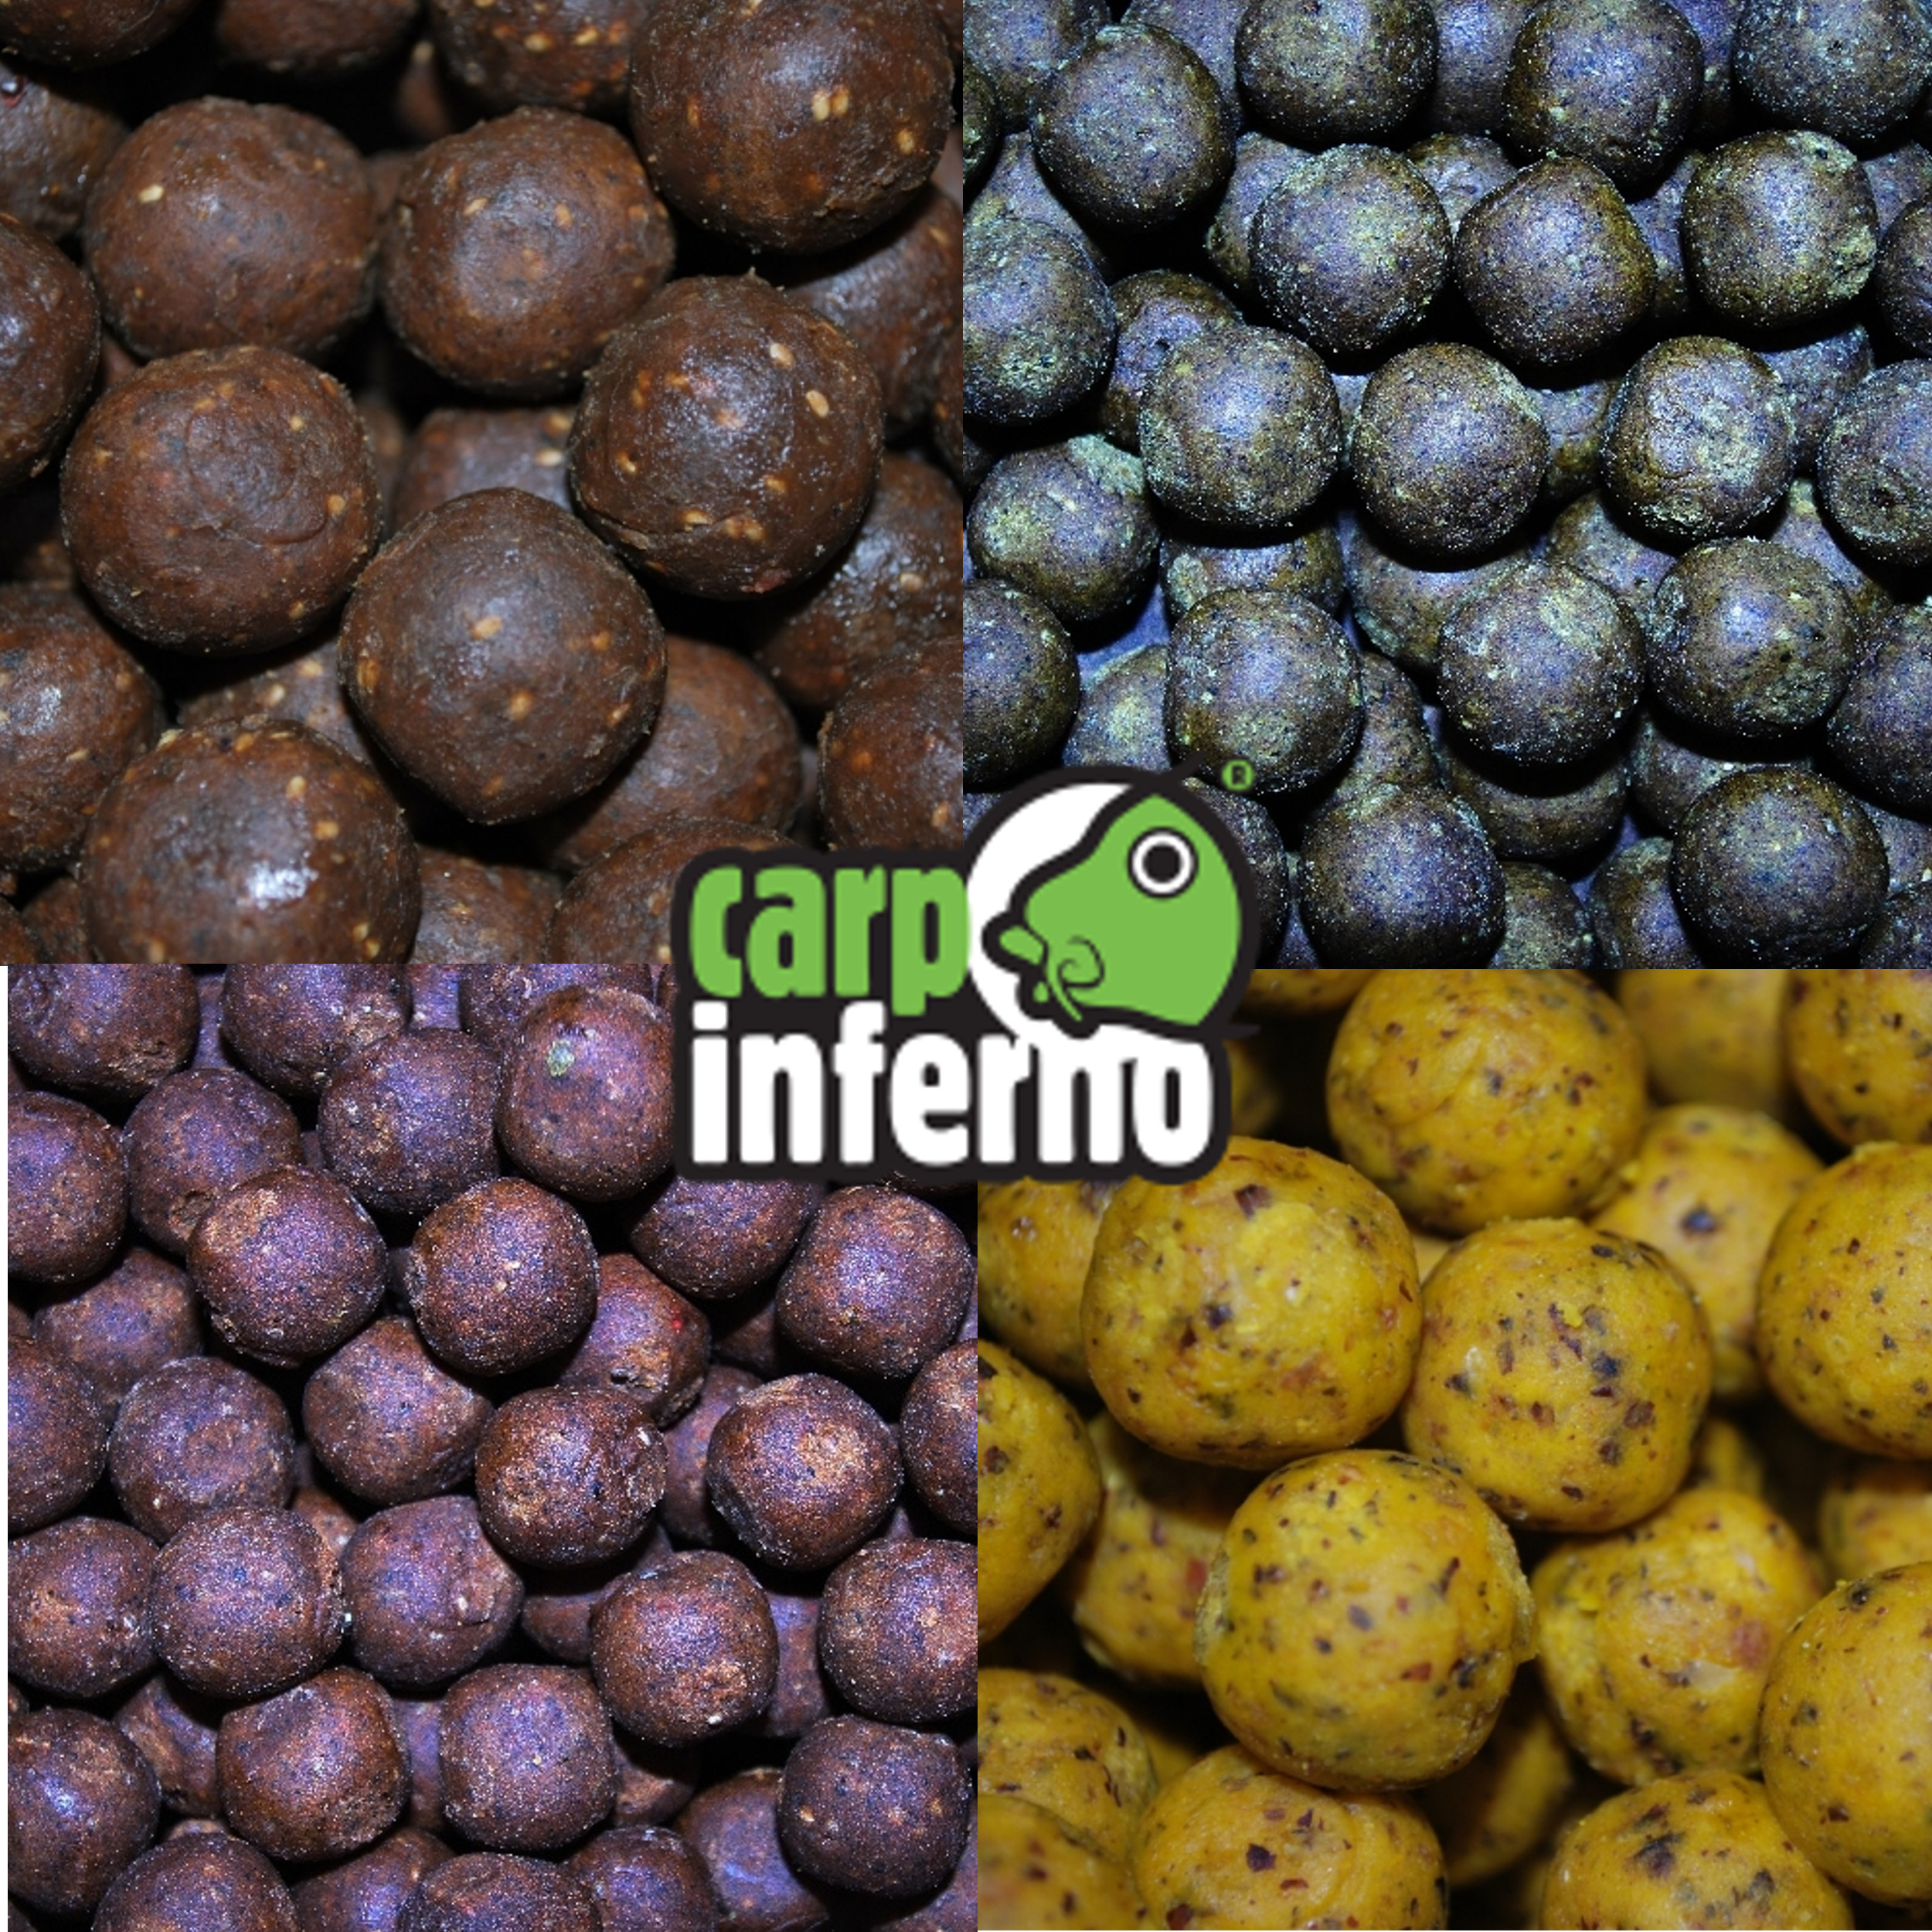 CARP INFERNO Boilies Ocean food |Salmon Spice - 20mm, 1kg